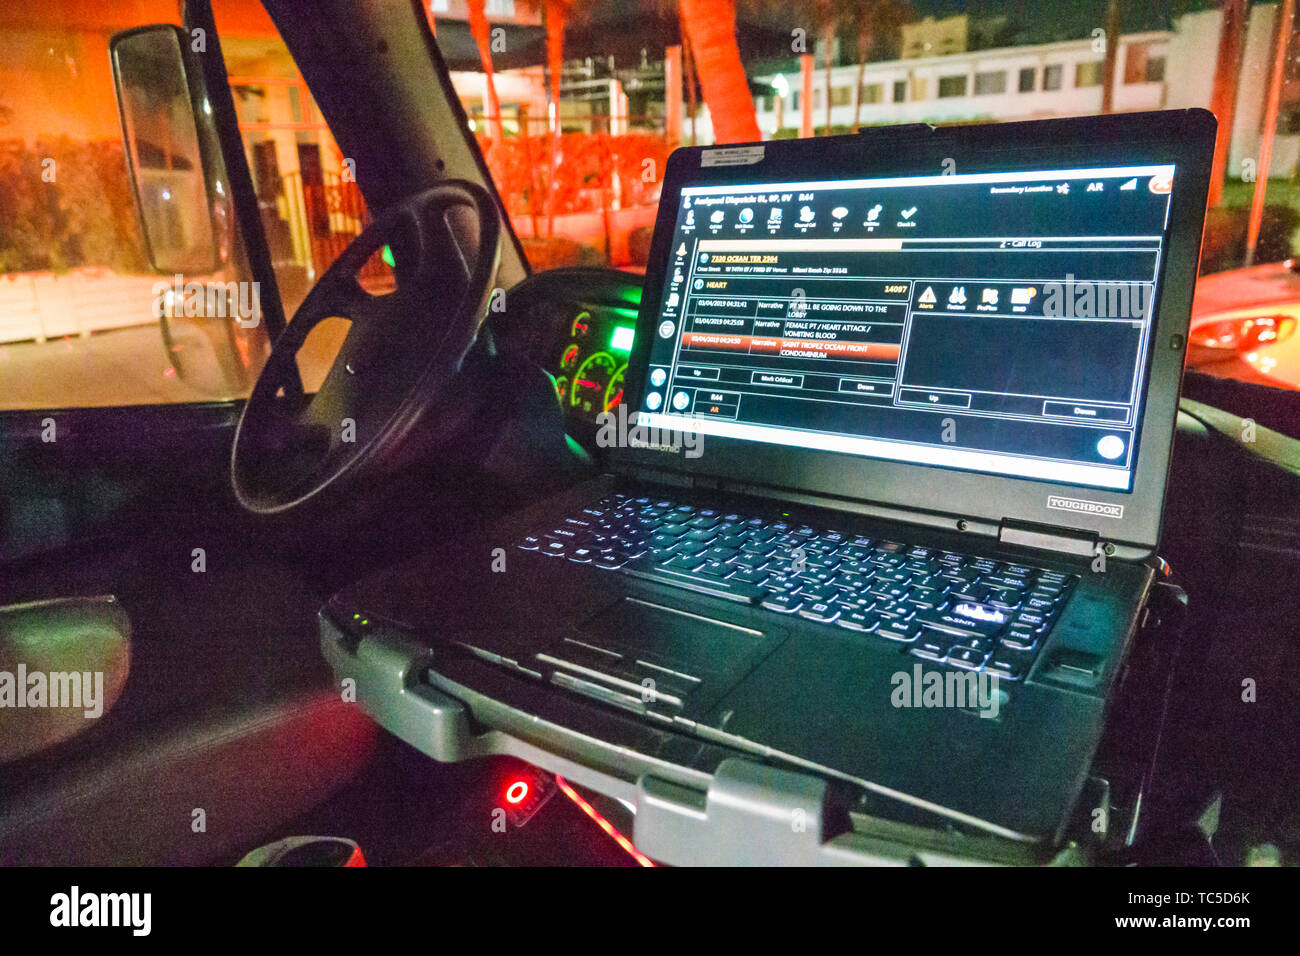 Miami Beach Florida North Beach Fire Rescue ambulance inside laptop computer screen medical emergency event possible heart attack details night - Stock Image